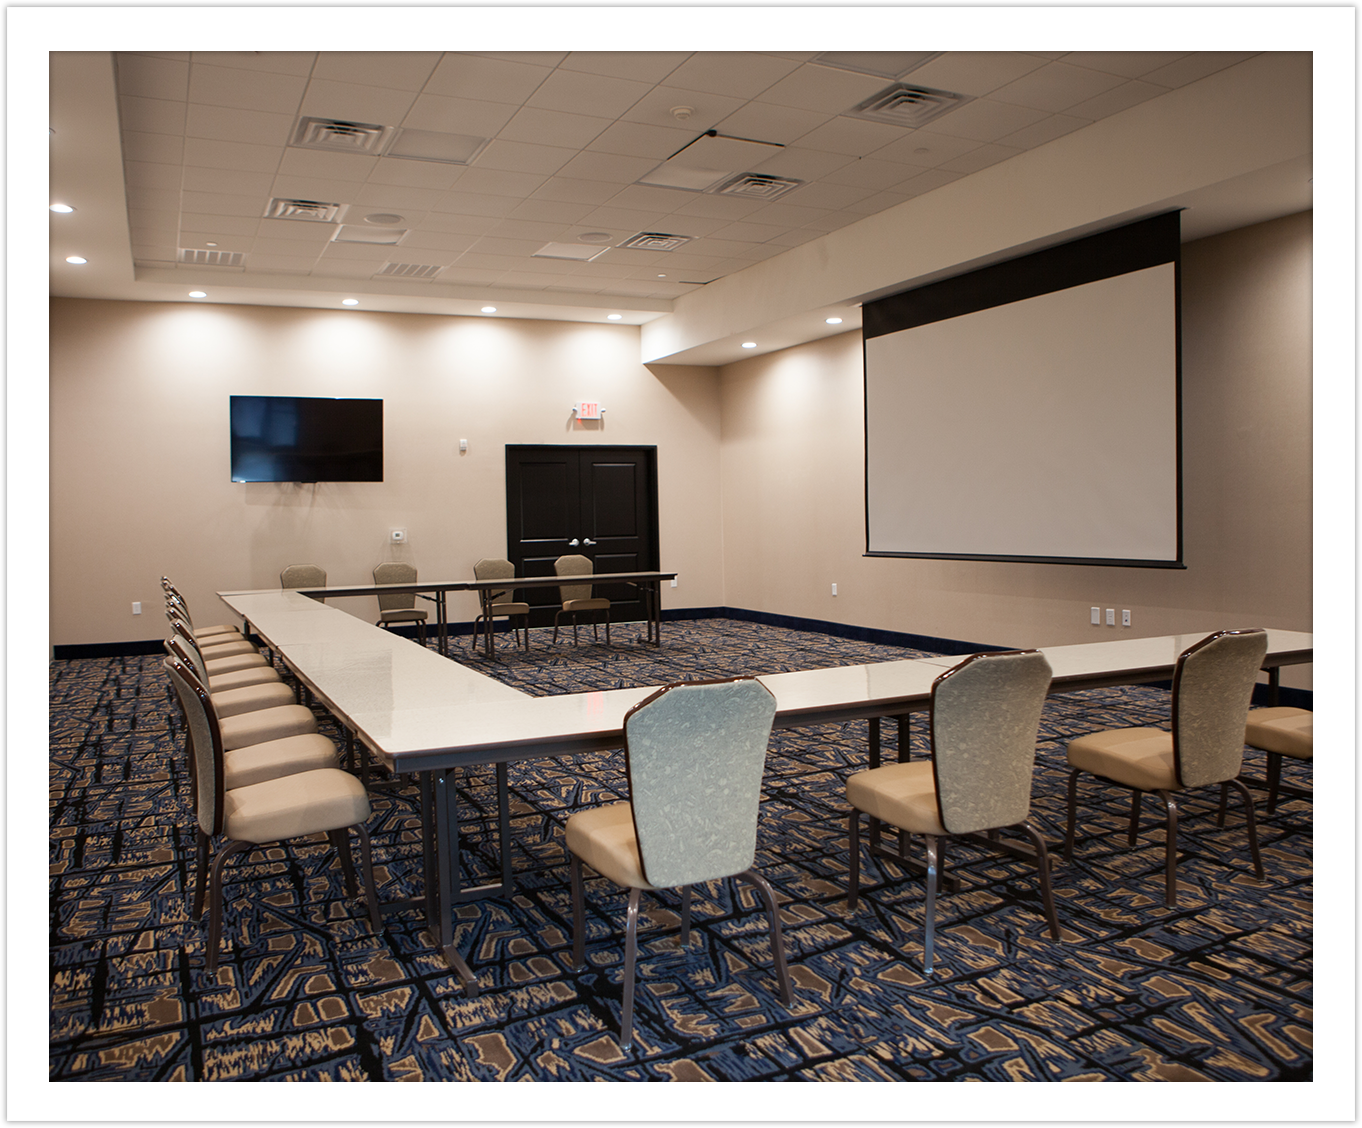 Image of Conference Room with Projector at Arbor Hotel and Conference Center Lubbock Texas